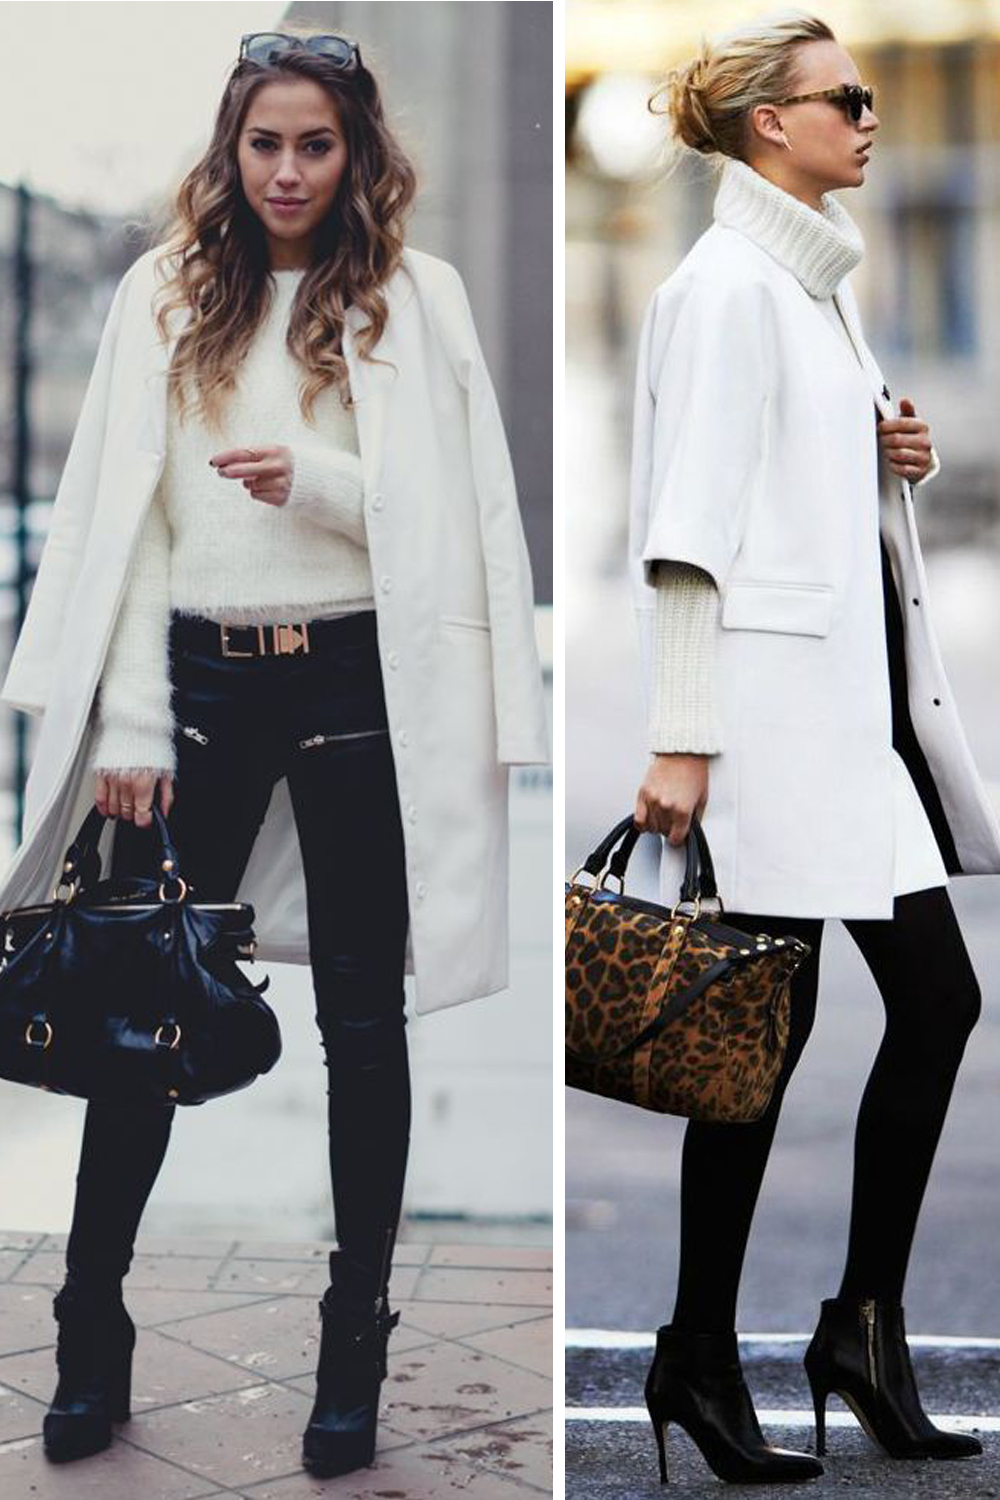 White coat: how to wear it